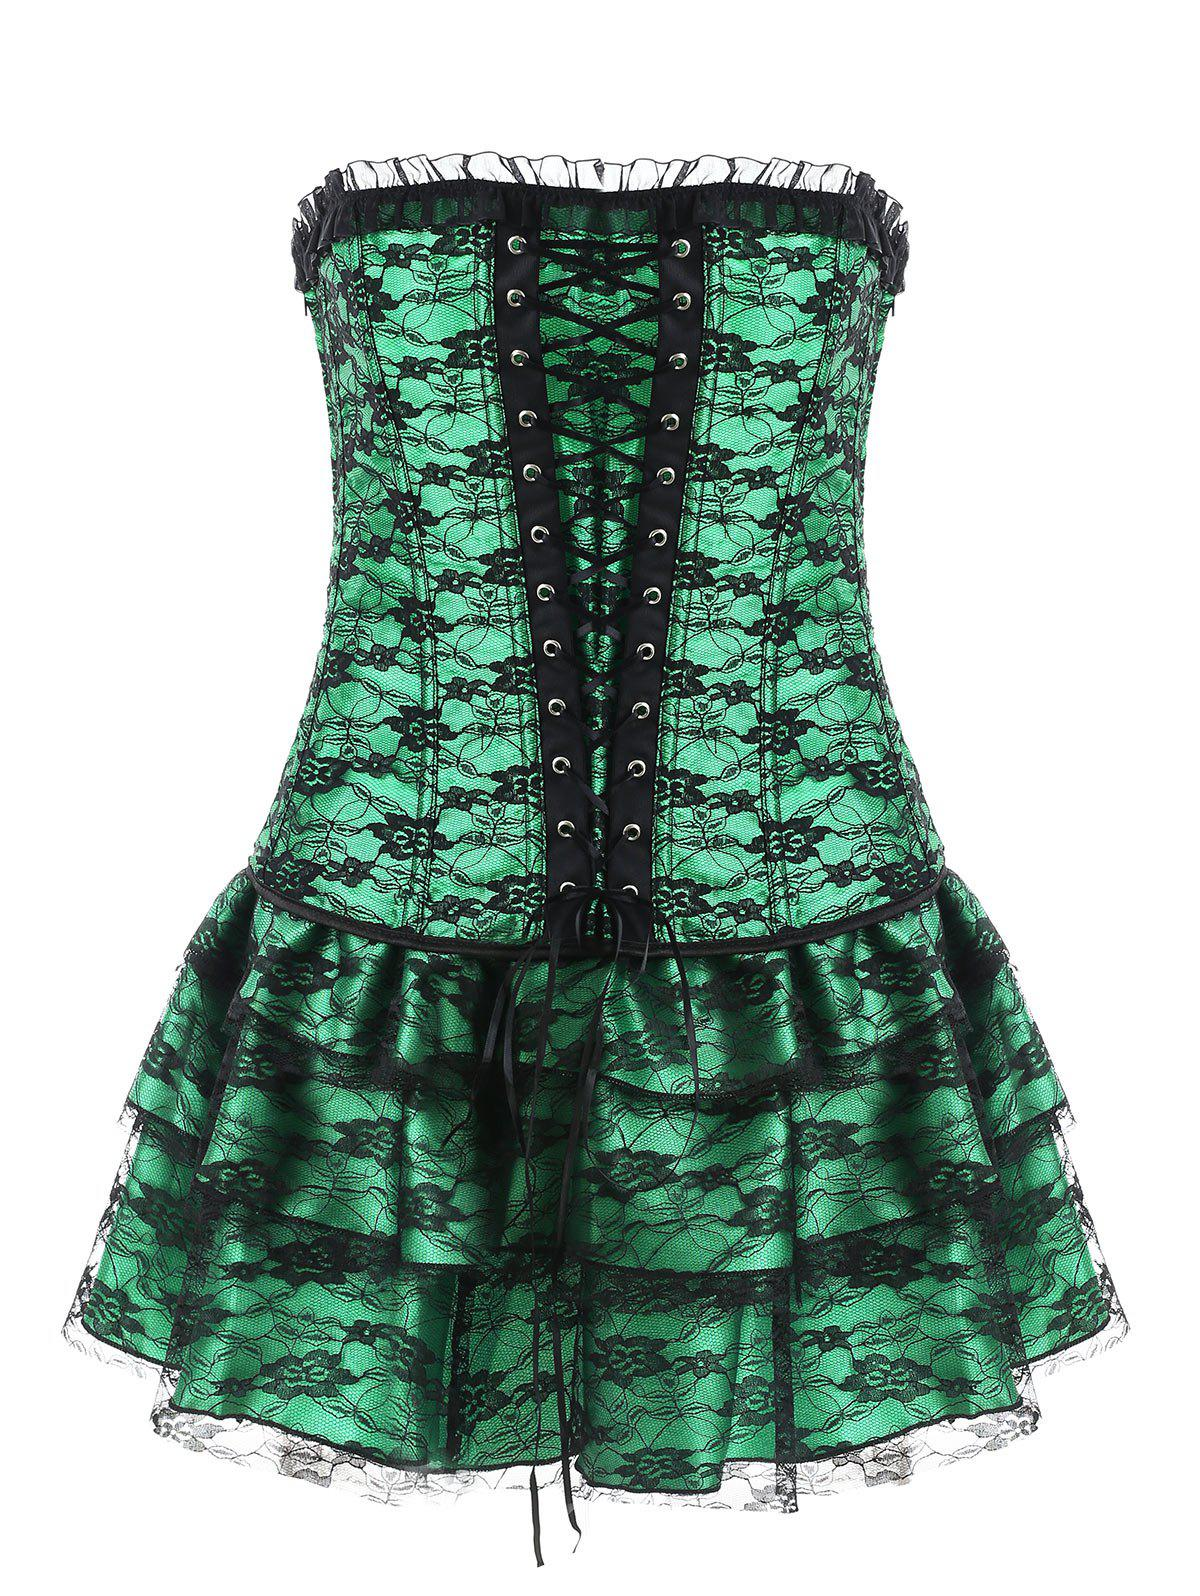 Online Lace-up Corset Top with Lace Skirt